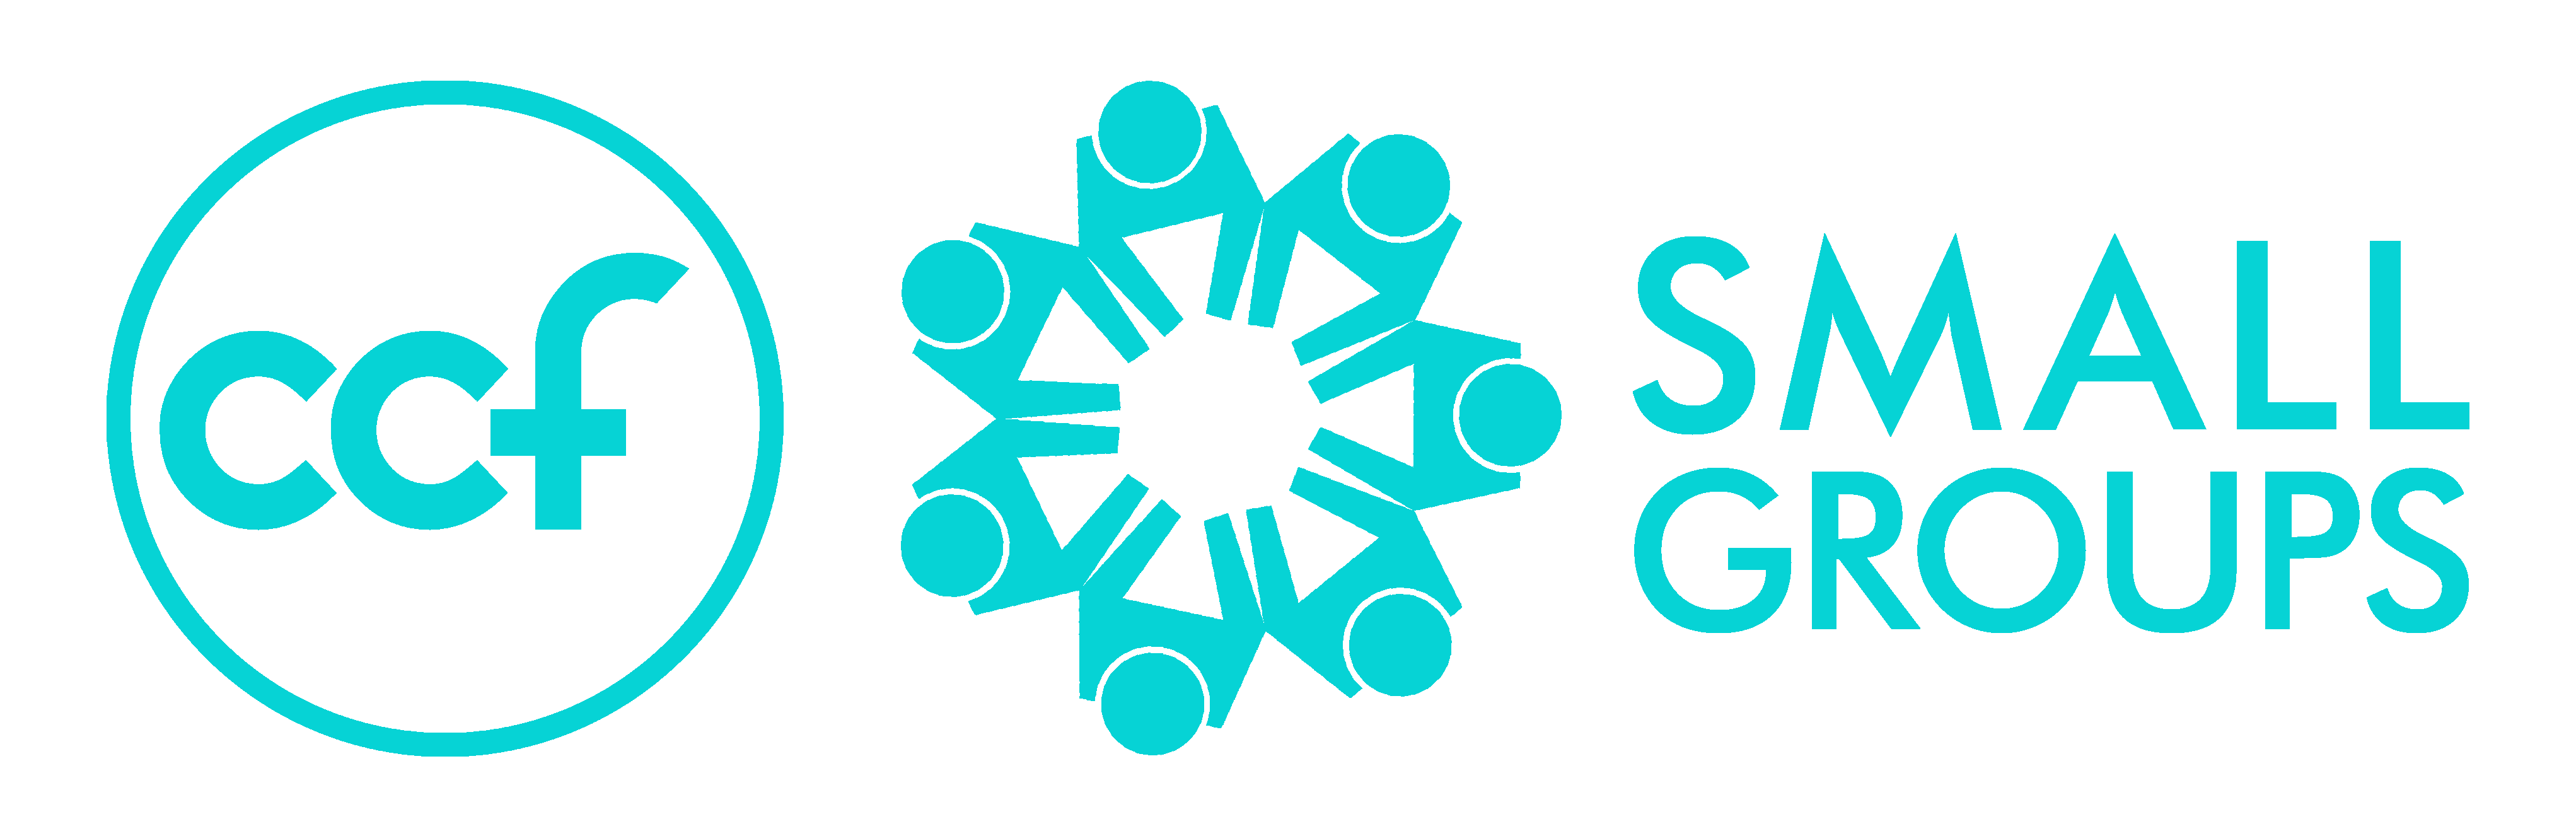 CCF-small-groups-logos-teal